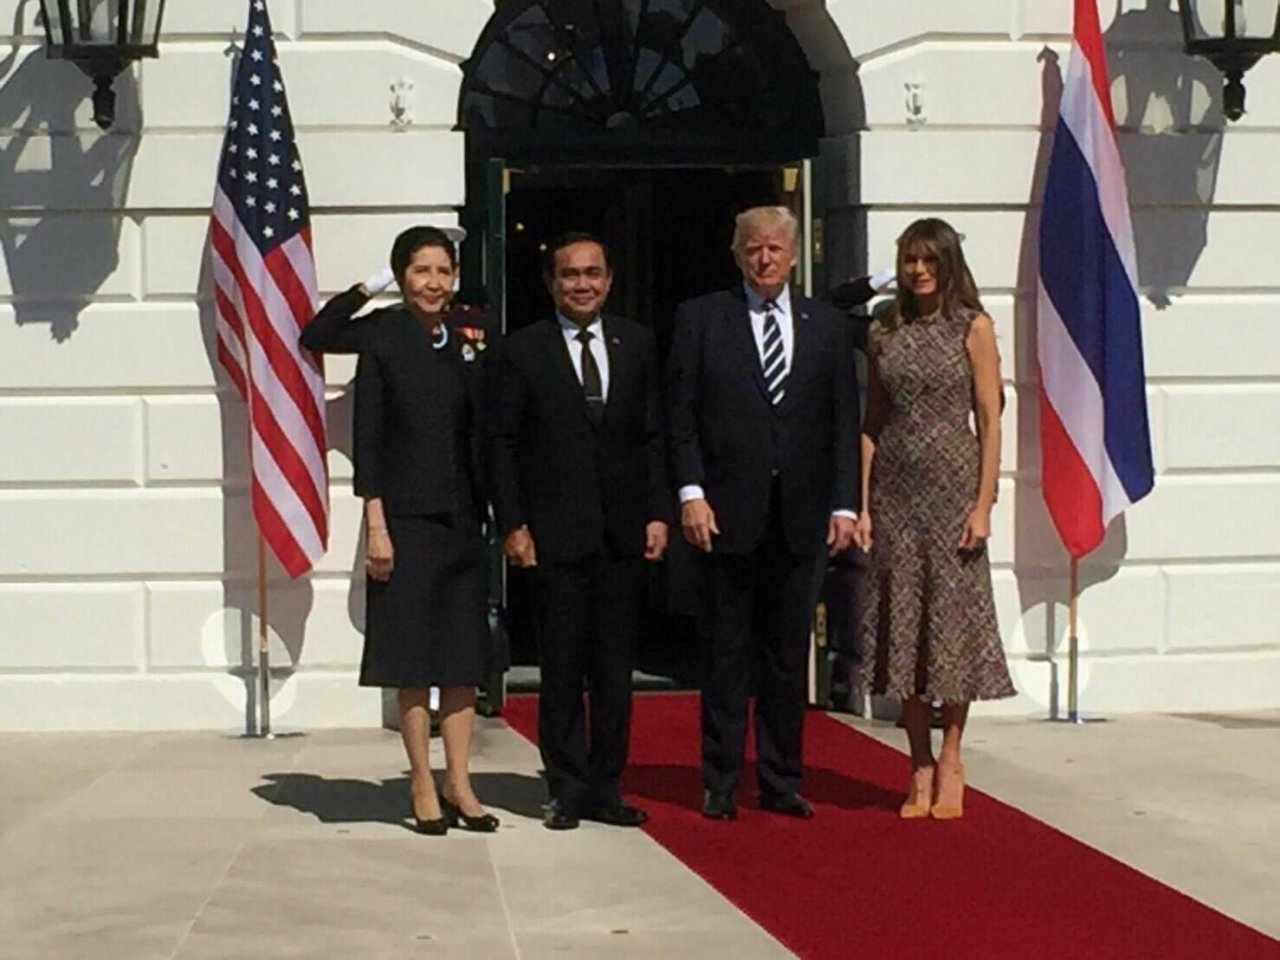 Trump says United States hopes to improve trade balance with Thailand